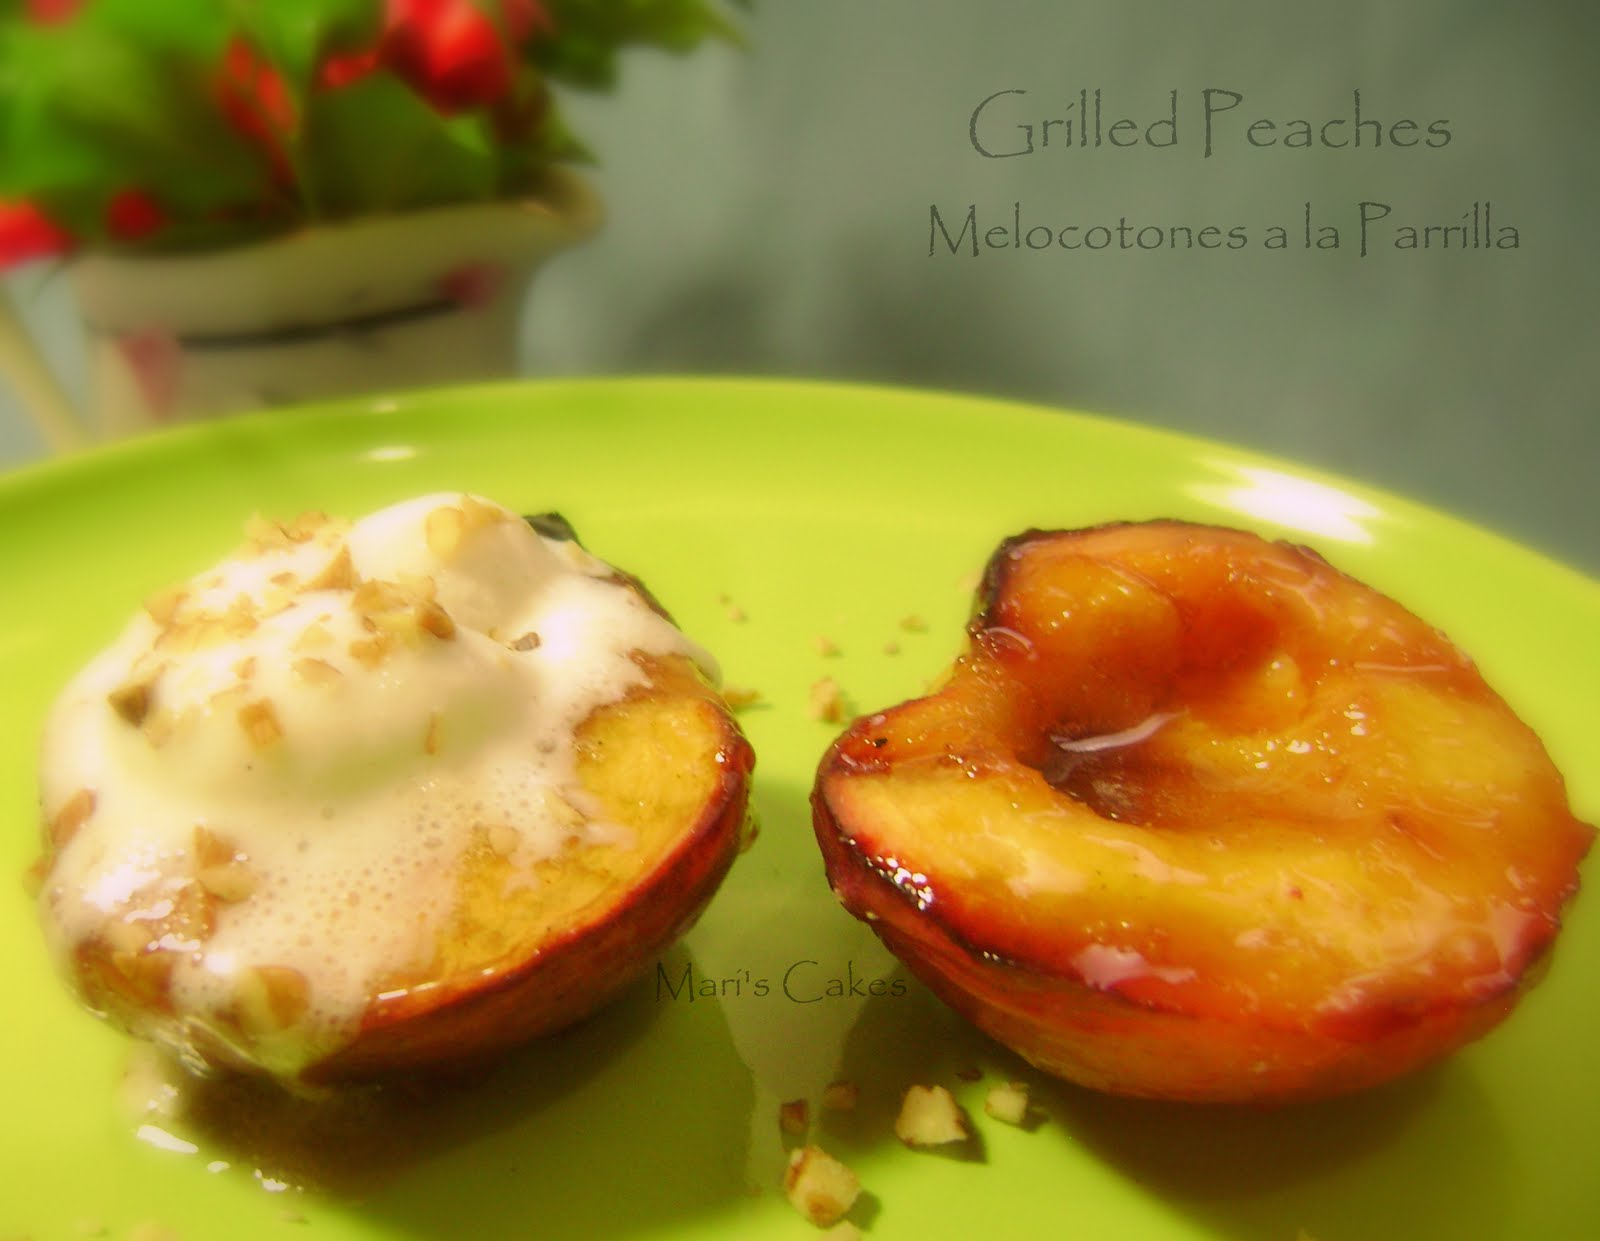 GRILLED PEACHES WITH CINNAMON SYRUP | Mari's Cakes (English)